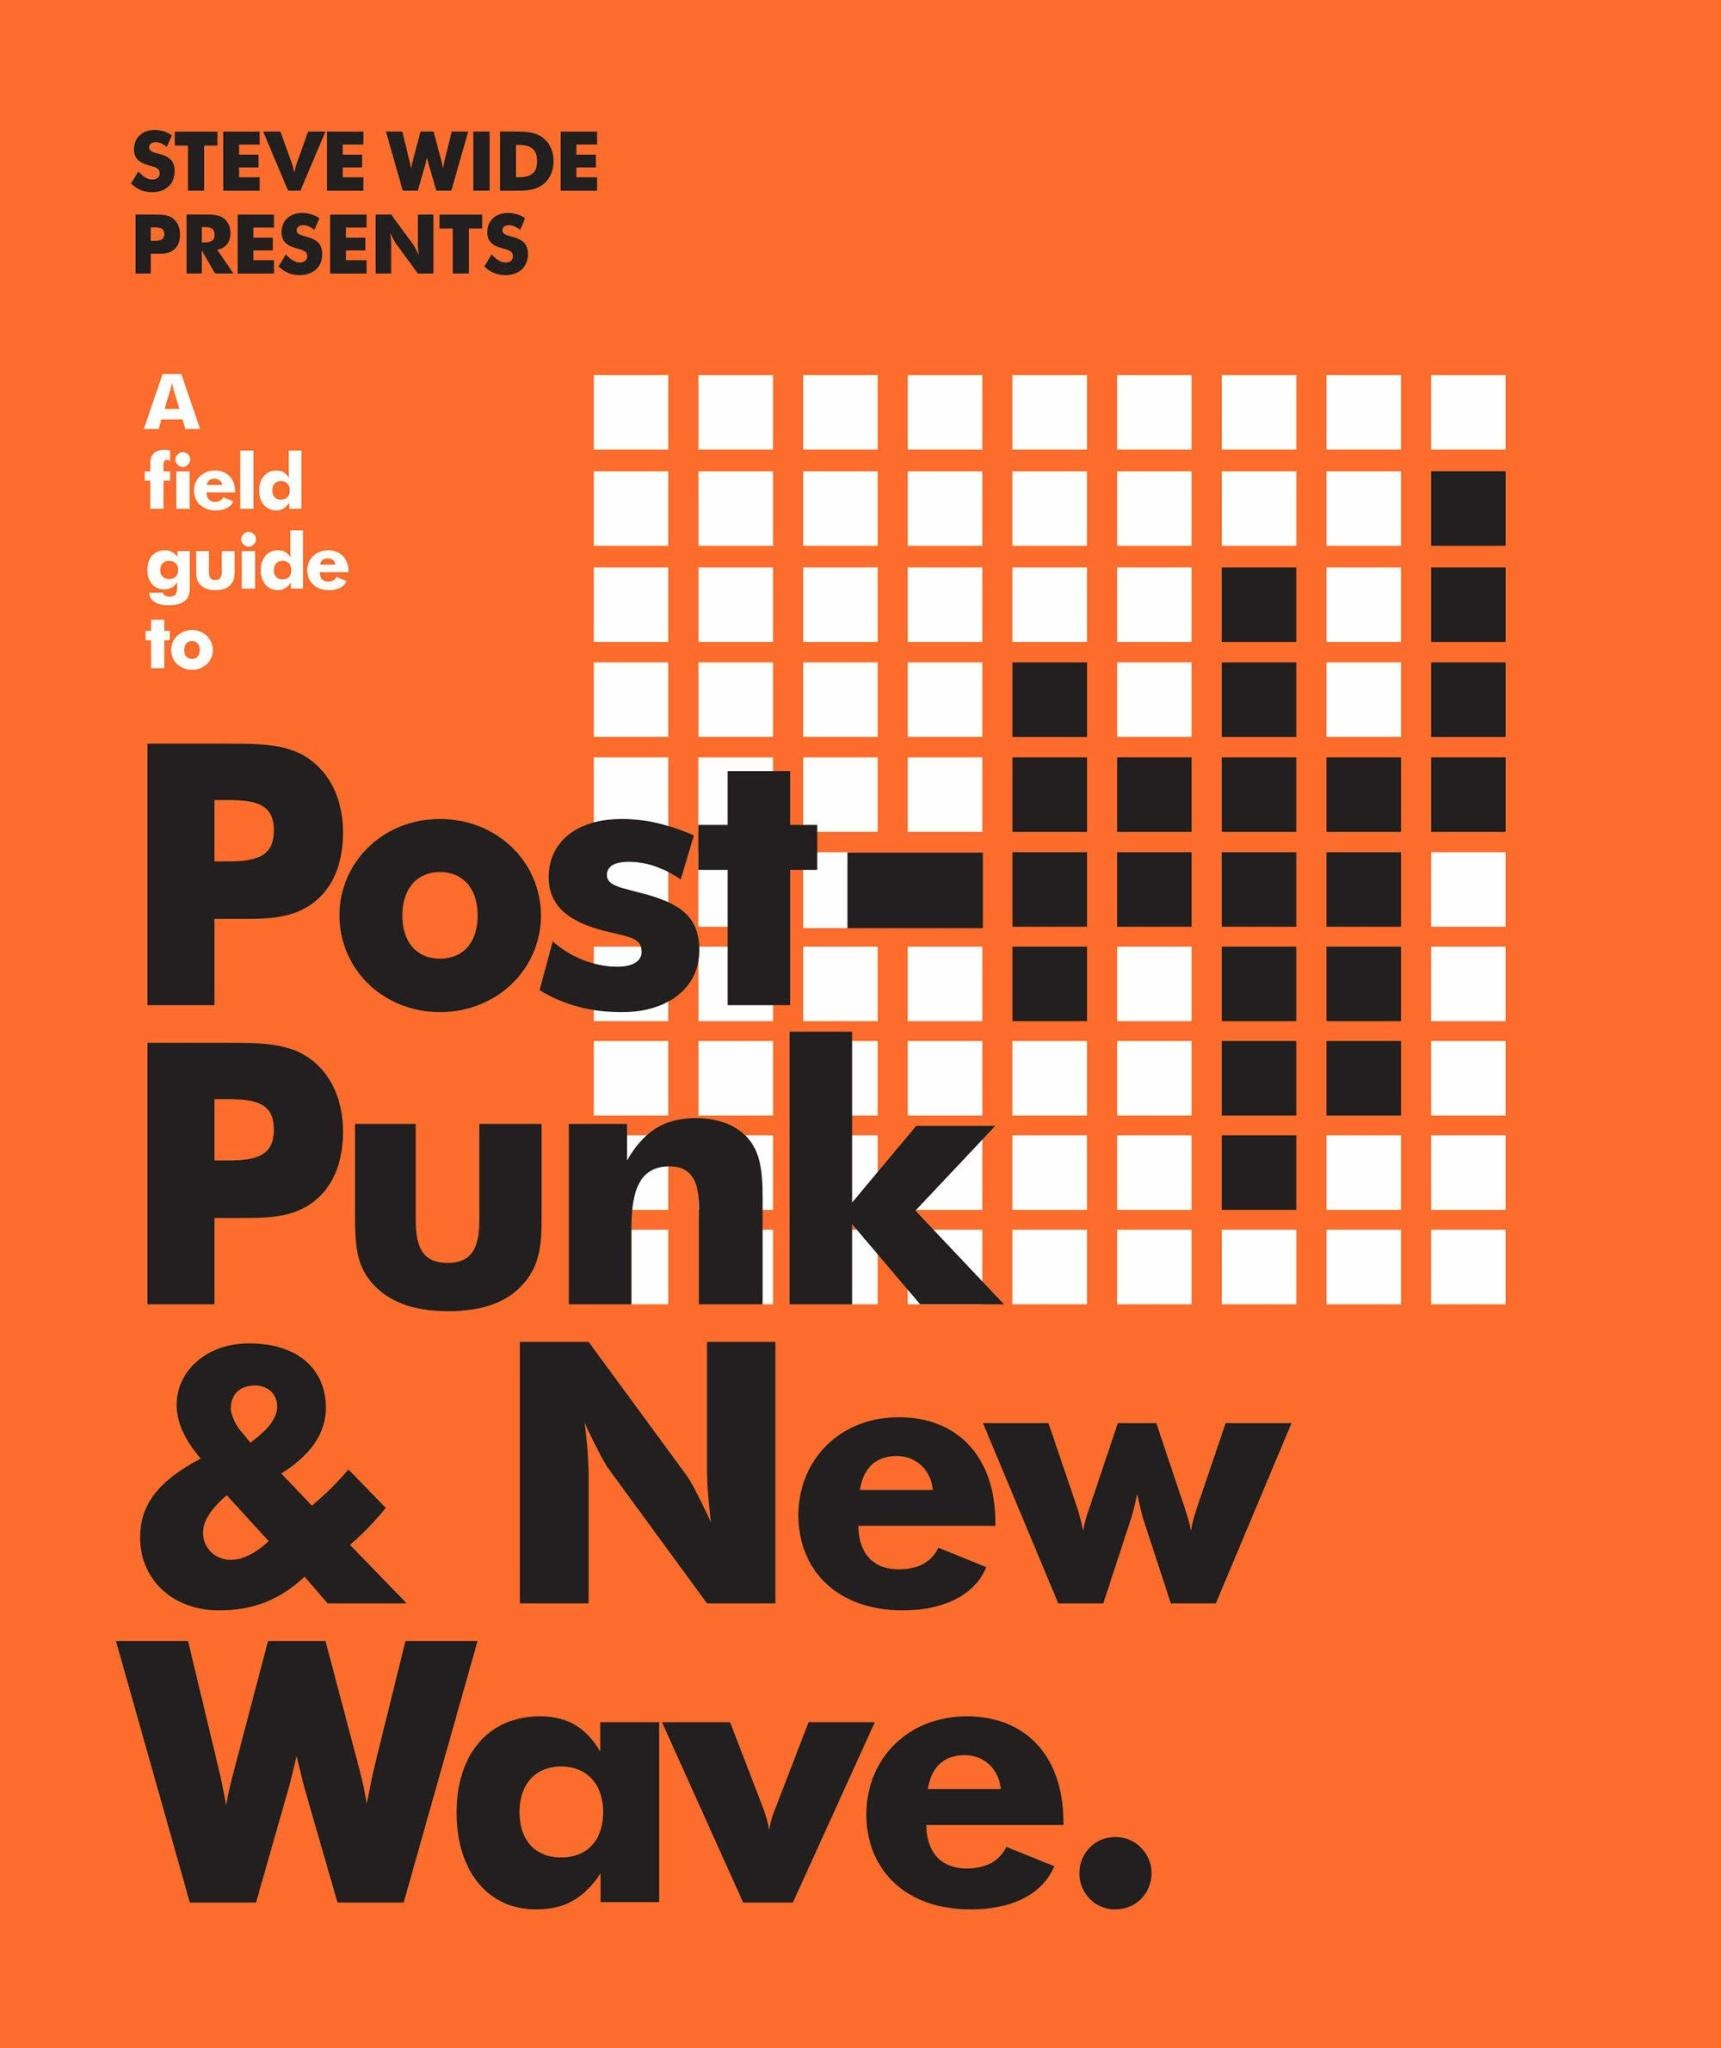 About Music A Field Guide to Post-Punk & New Wave